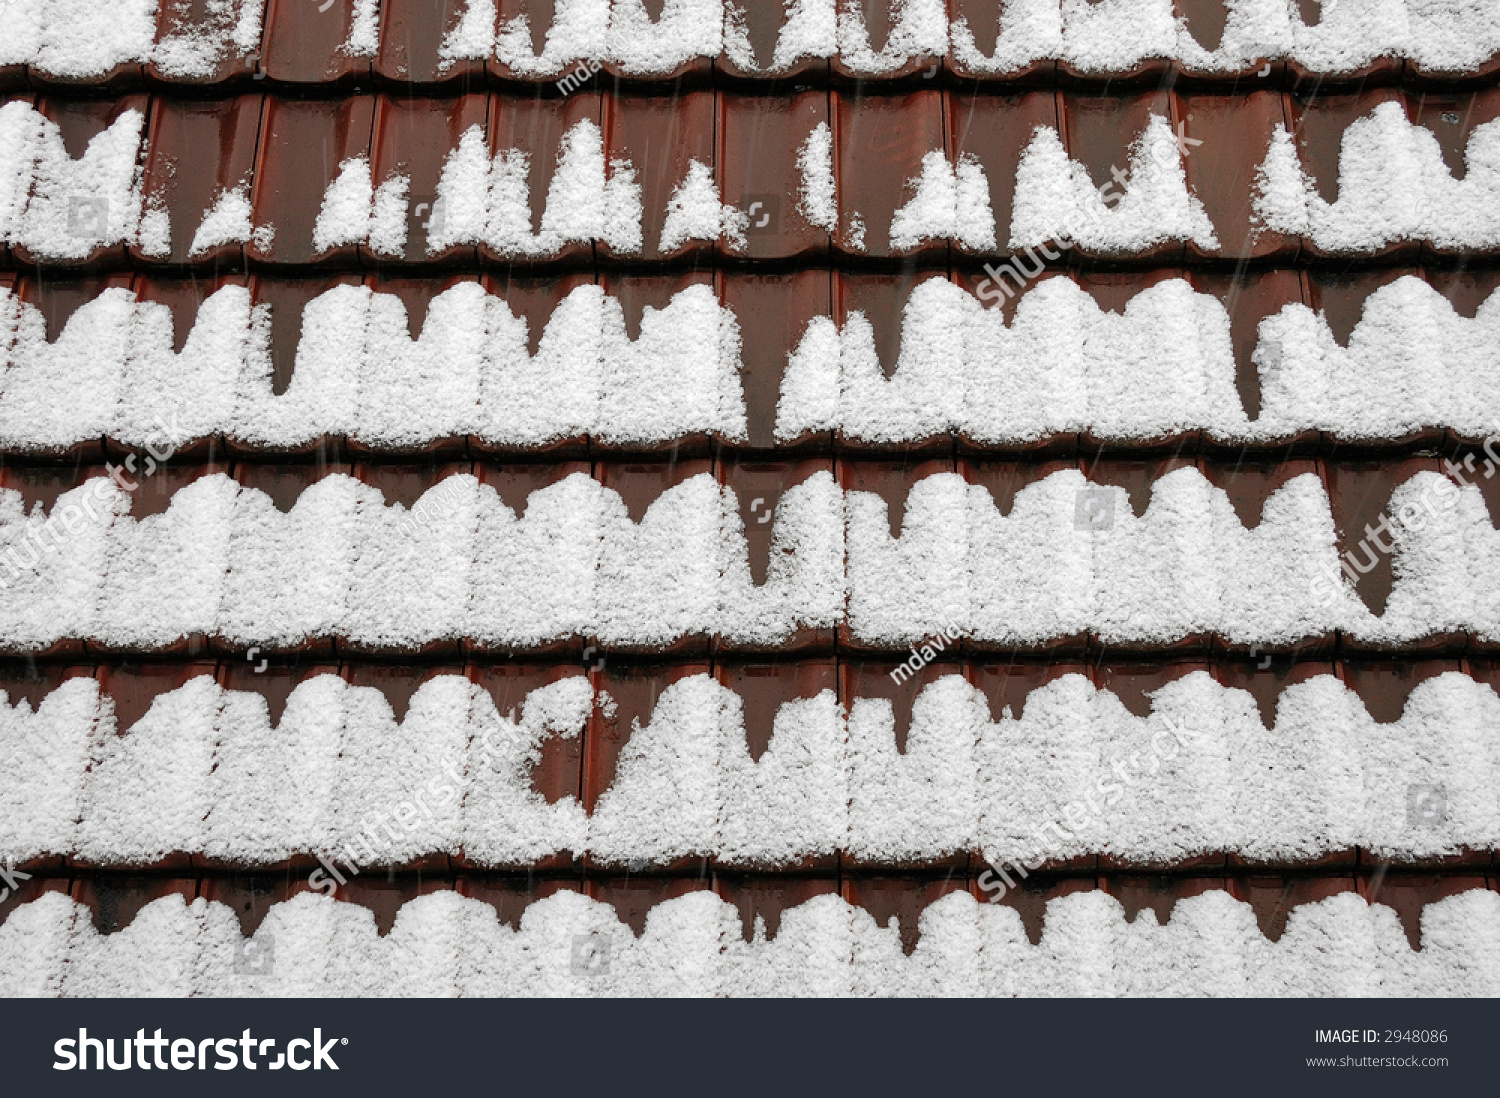 Snow Covered Roof Tiles Stock Photo 2948086 Shutterstock